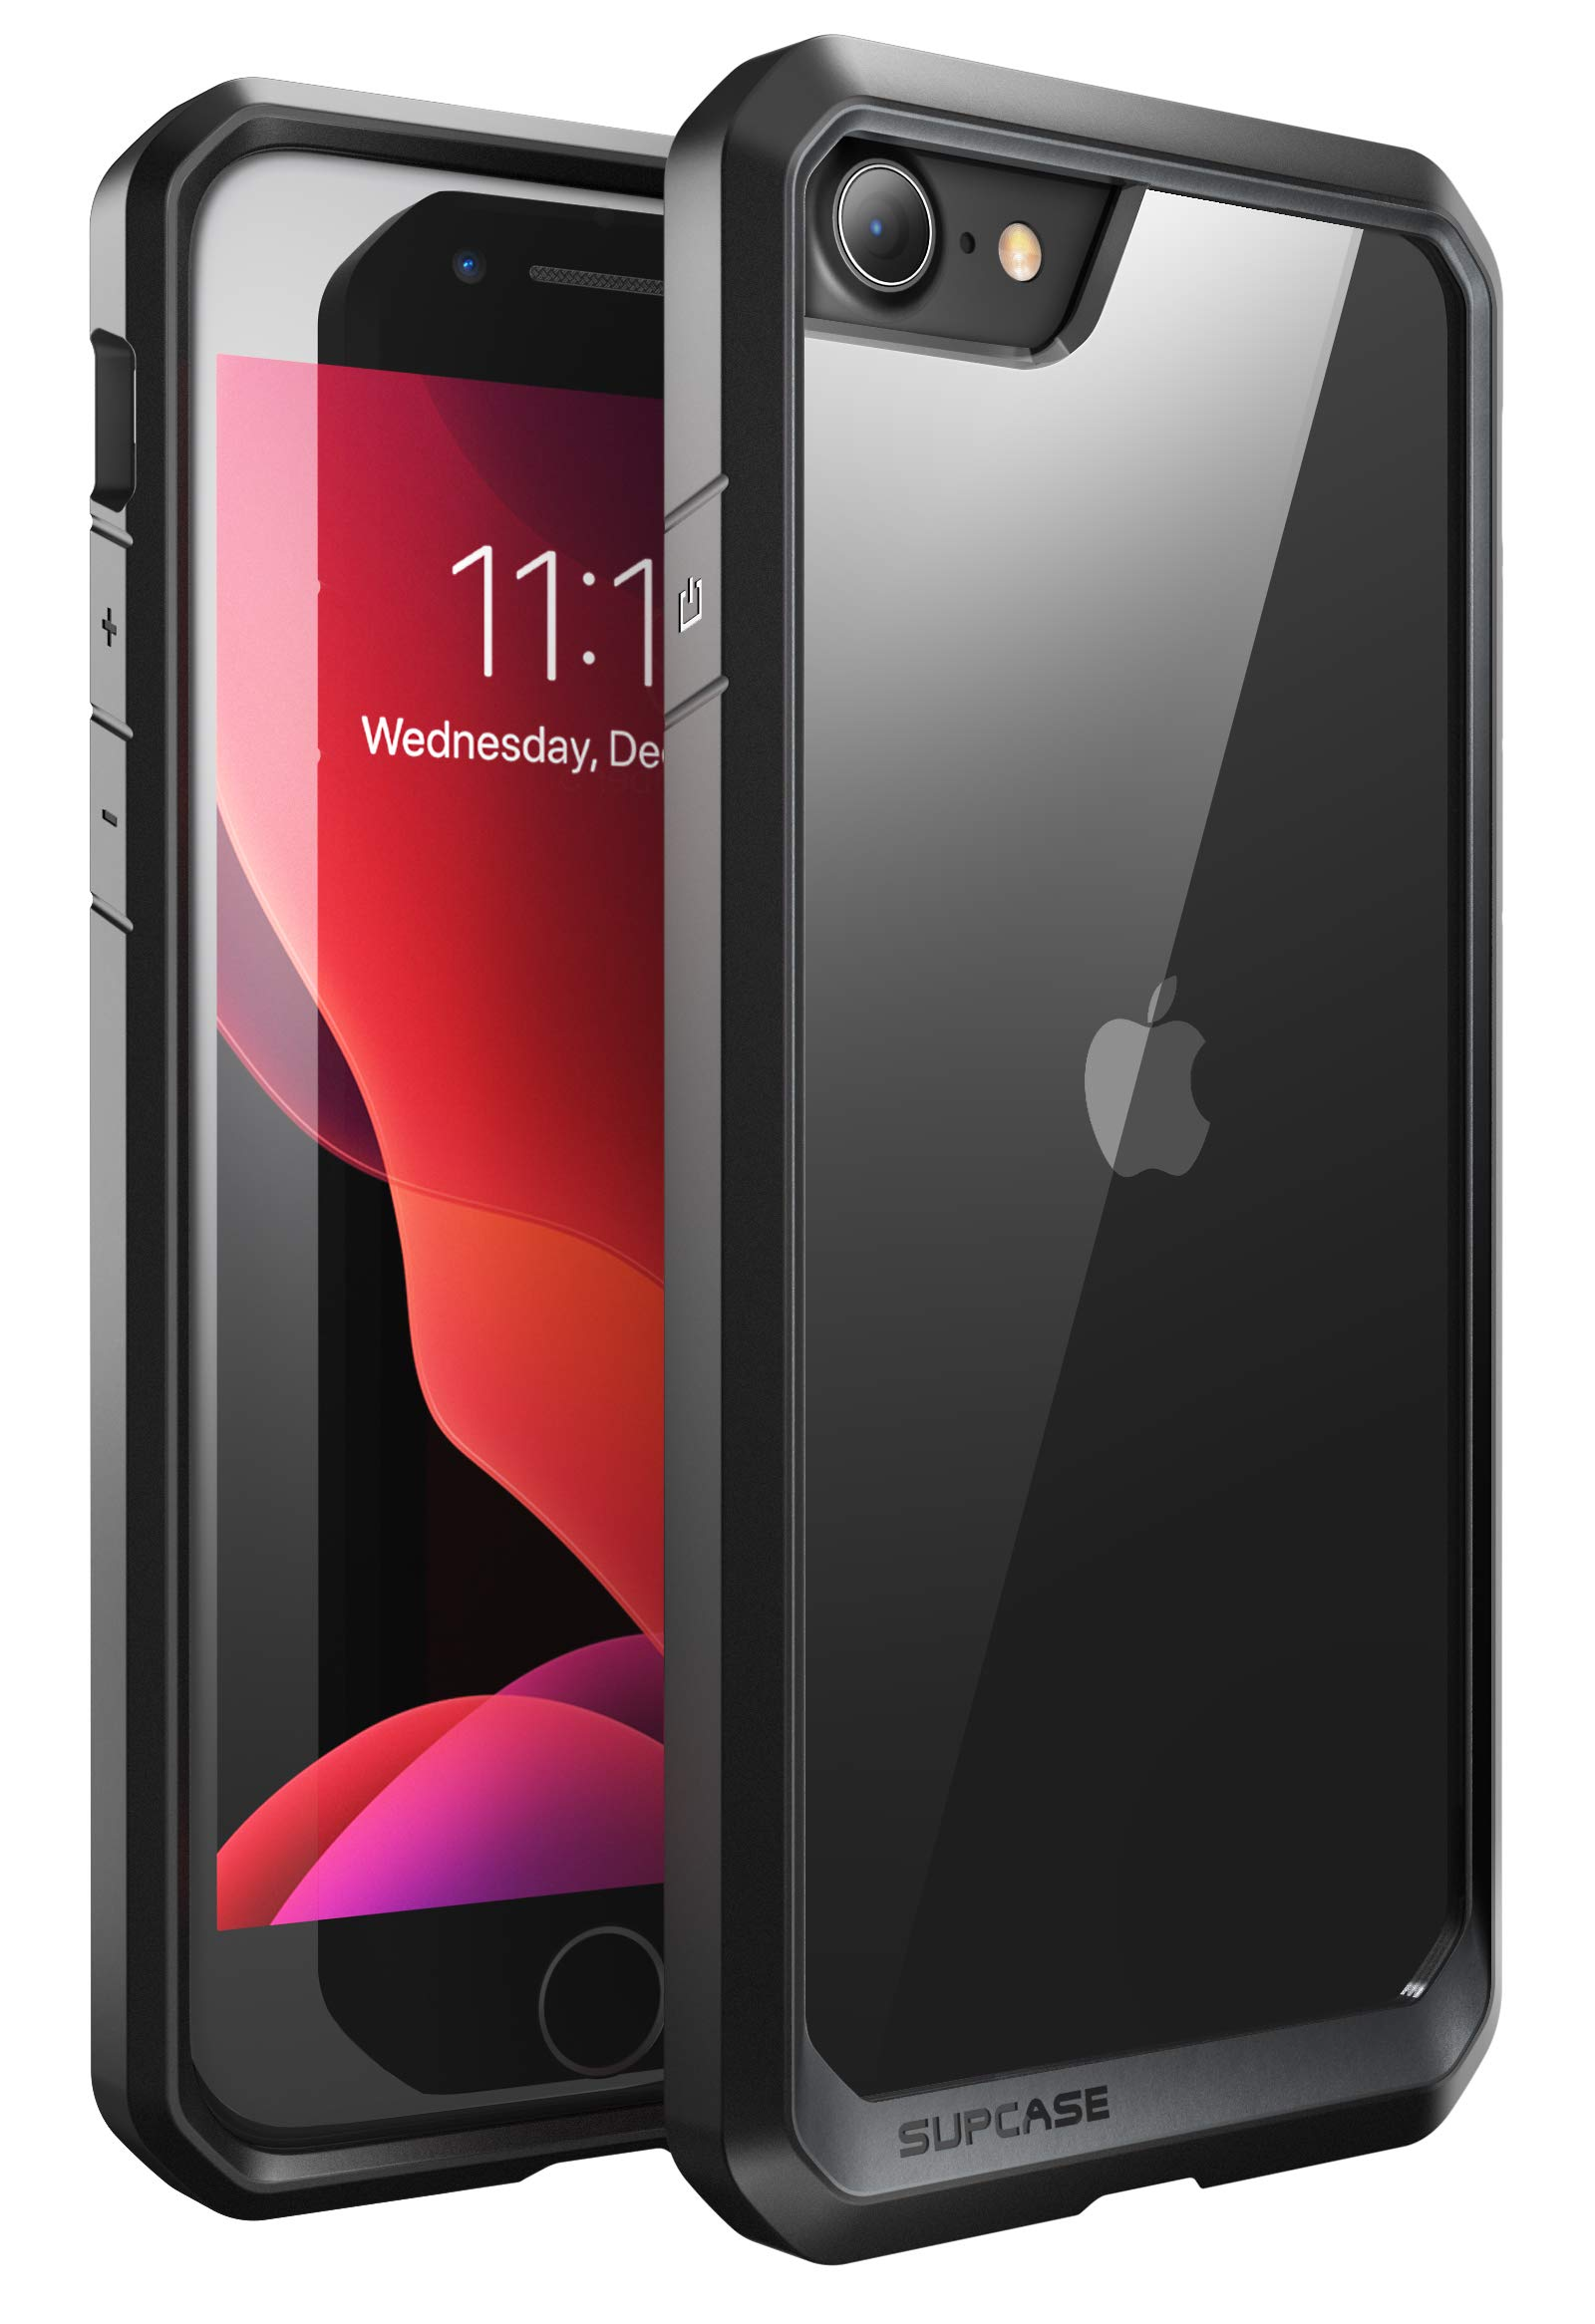 SupCase Unicorn Beetle Series Case Designed for iPhone SE 2nd Generation/iPhone 7/iPhone 8, Premium Hybrid Protective Frost Clear Case (Frost/Black)